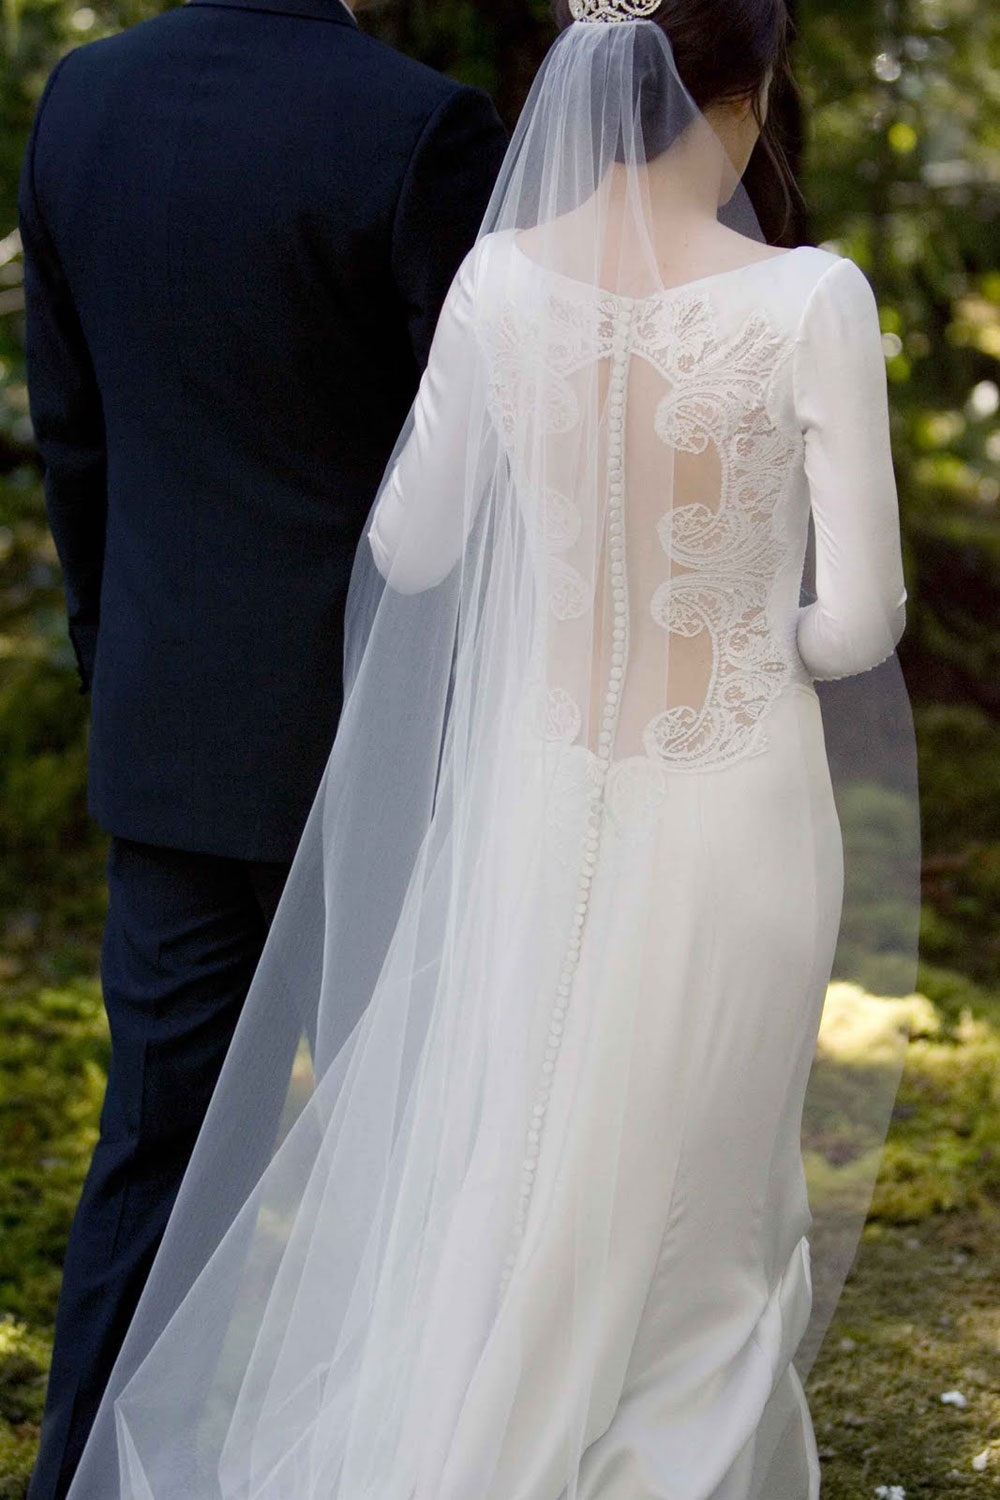 Bella Swan's Twilight Wedding Dress Replica Hits Stores ...